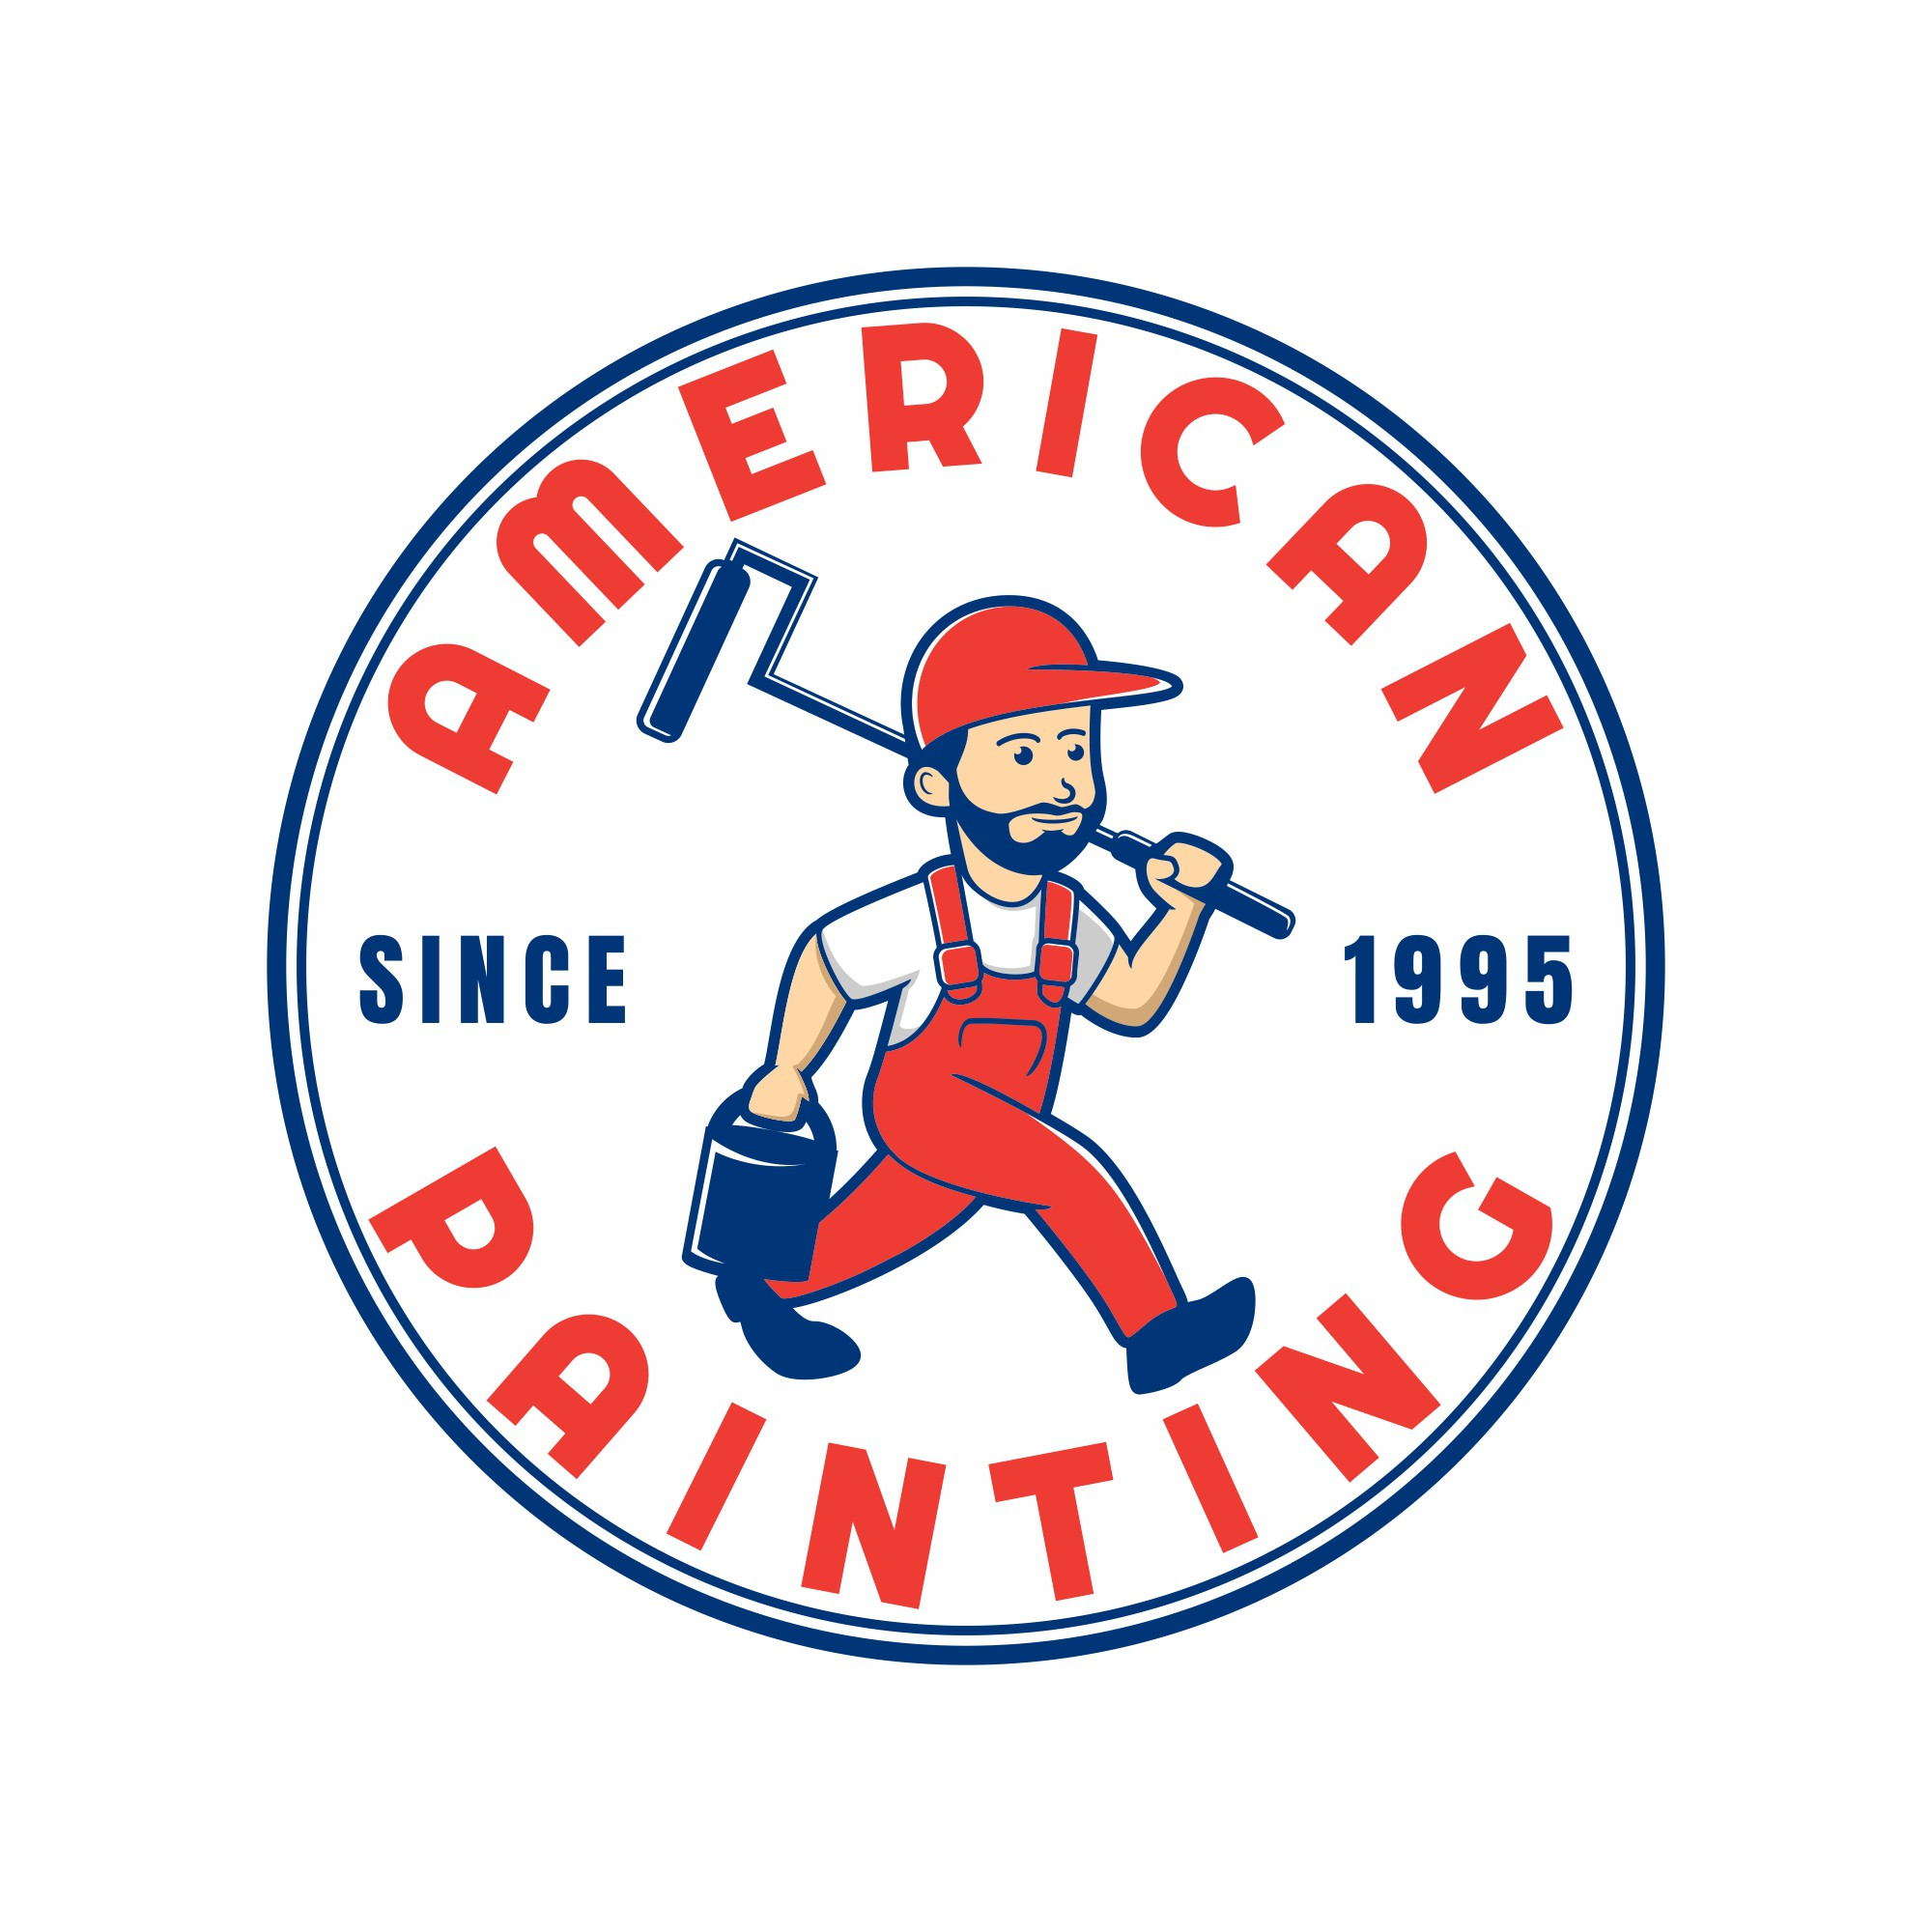 We need a new design for our painting company.